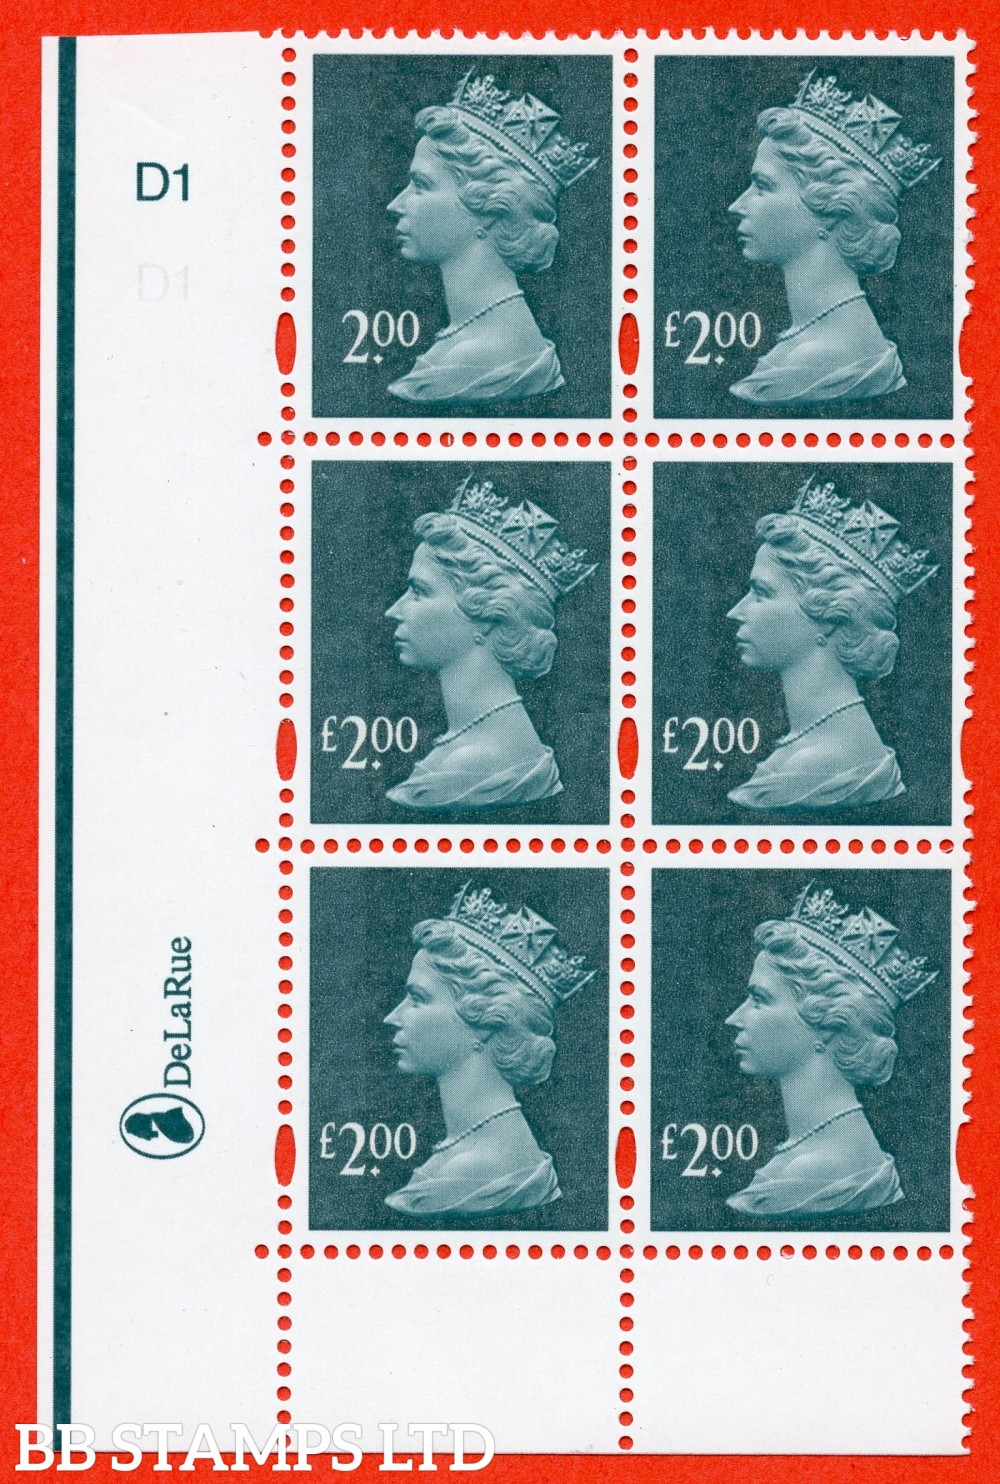 """SG. Y1747a. £2.00 deep blue green. A superb UNMOUNTED MINT cylinder """" D1 no dot """" block of 6 with the listed variety """" MISSING £ IN VALUE. Row 18/1. Cylinder D1 no stop """"."""